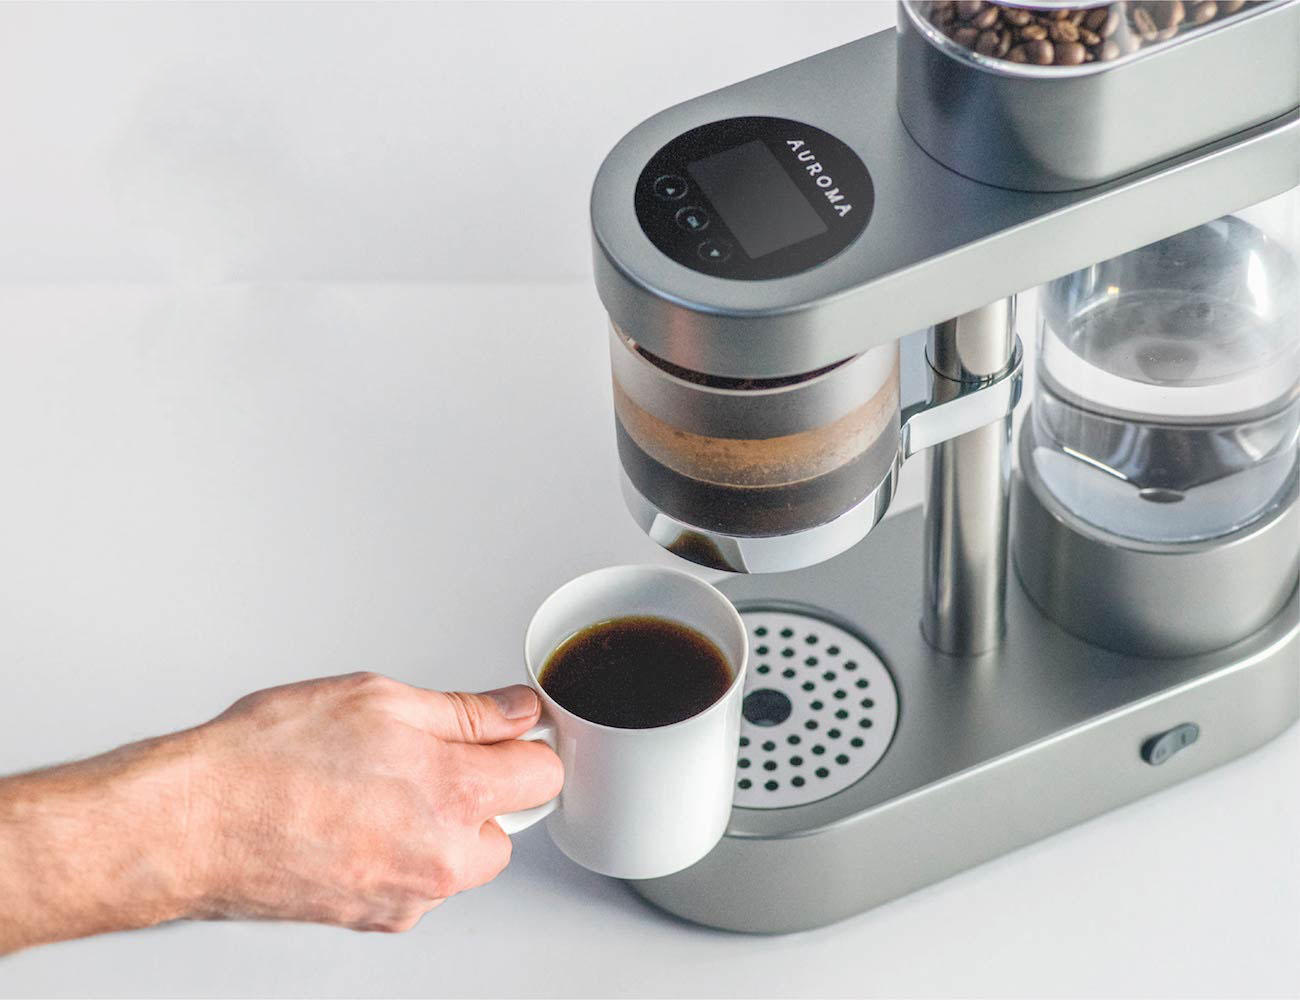 Auroma+One+%26%238211%3B+Brew+World-Class+Coffee+At+A+Push+Of+A+Button